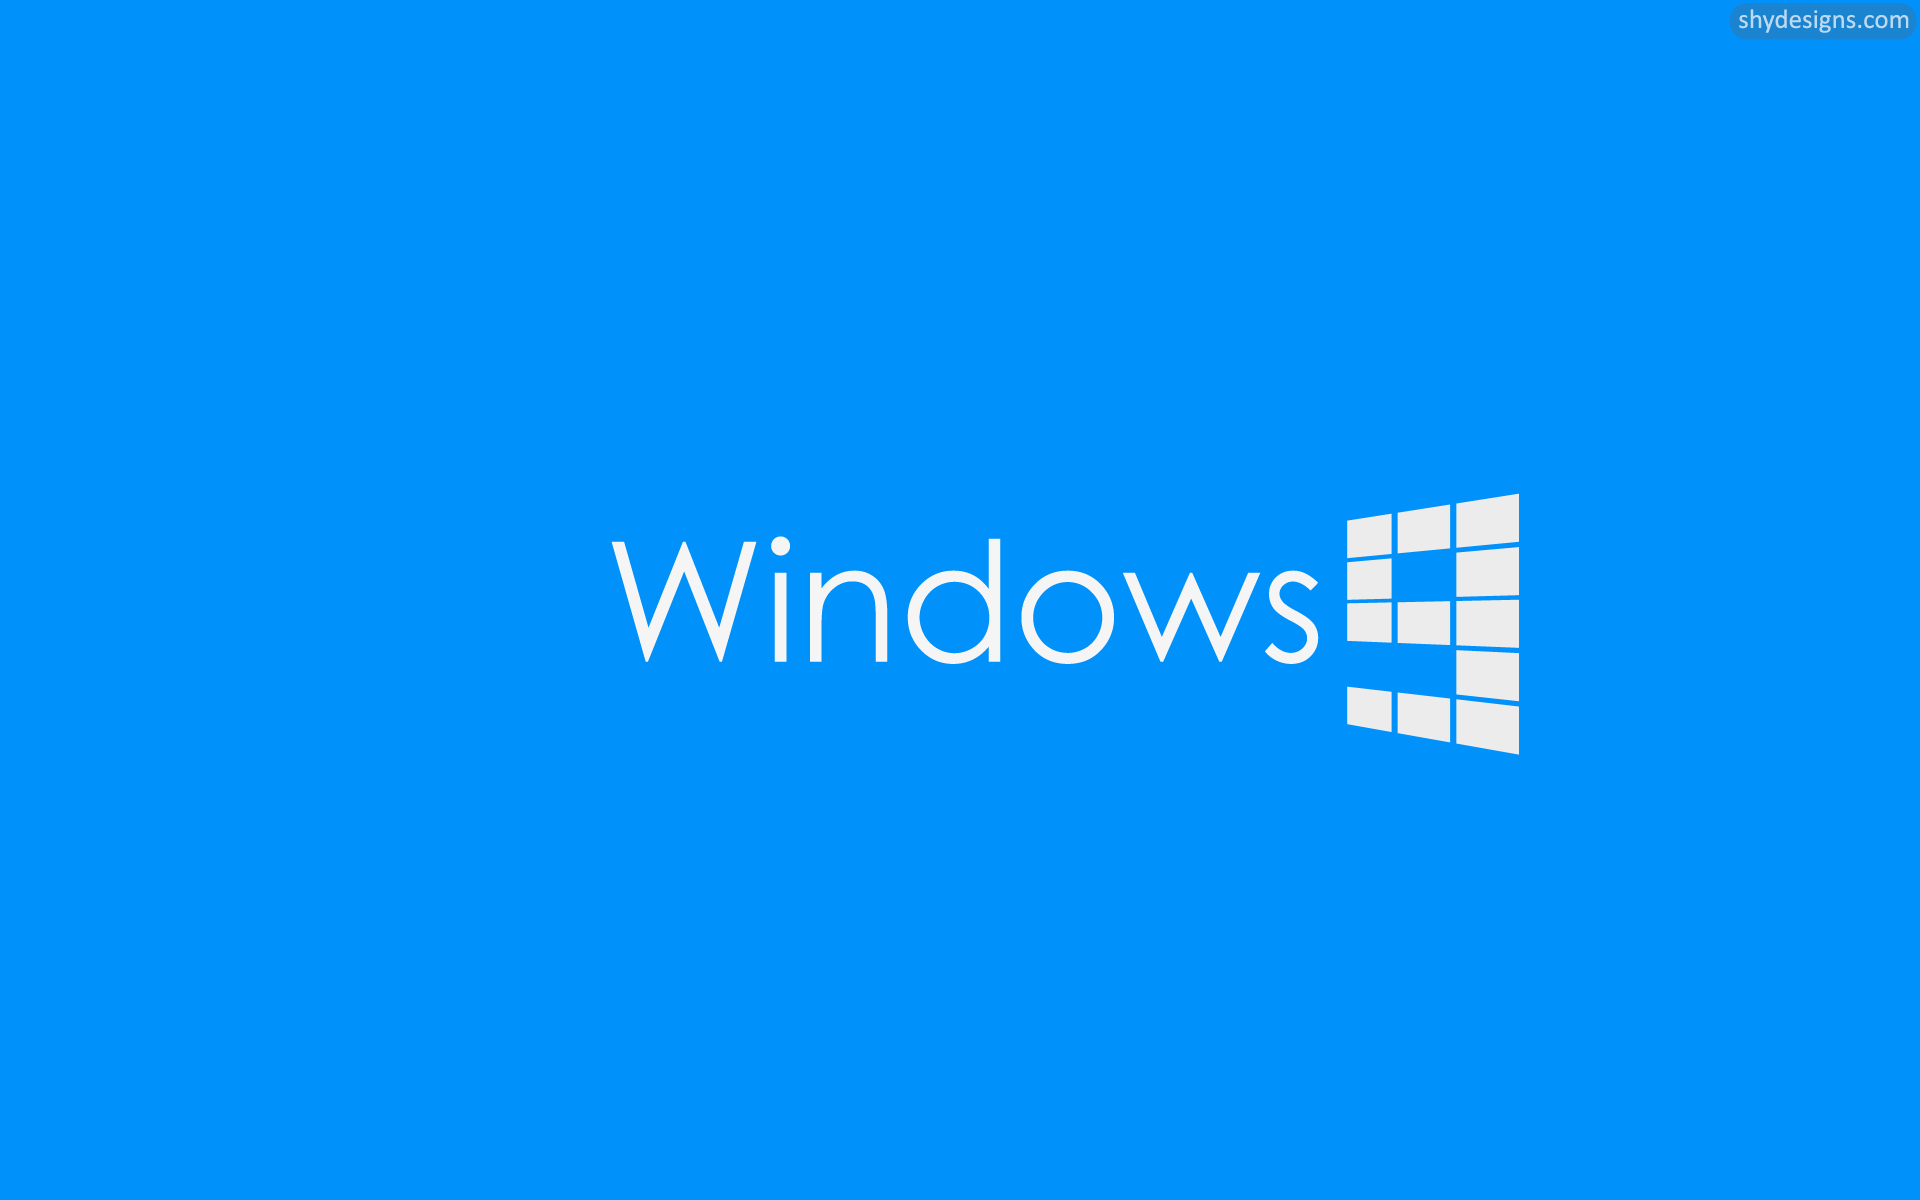 Images of Windows 9 | 1920x1200